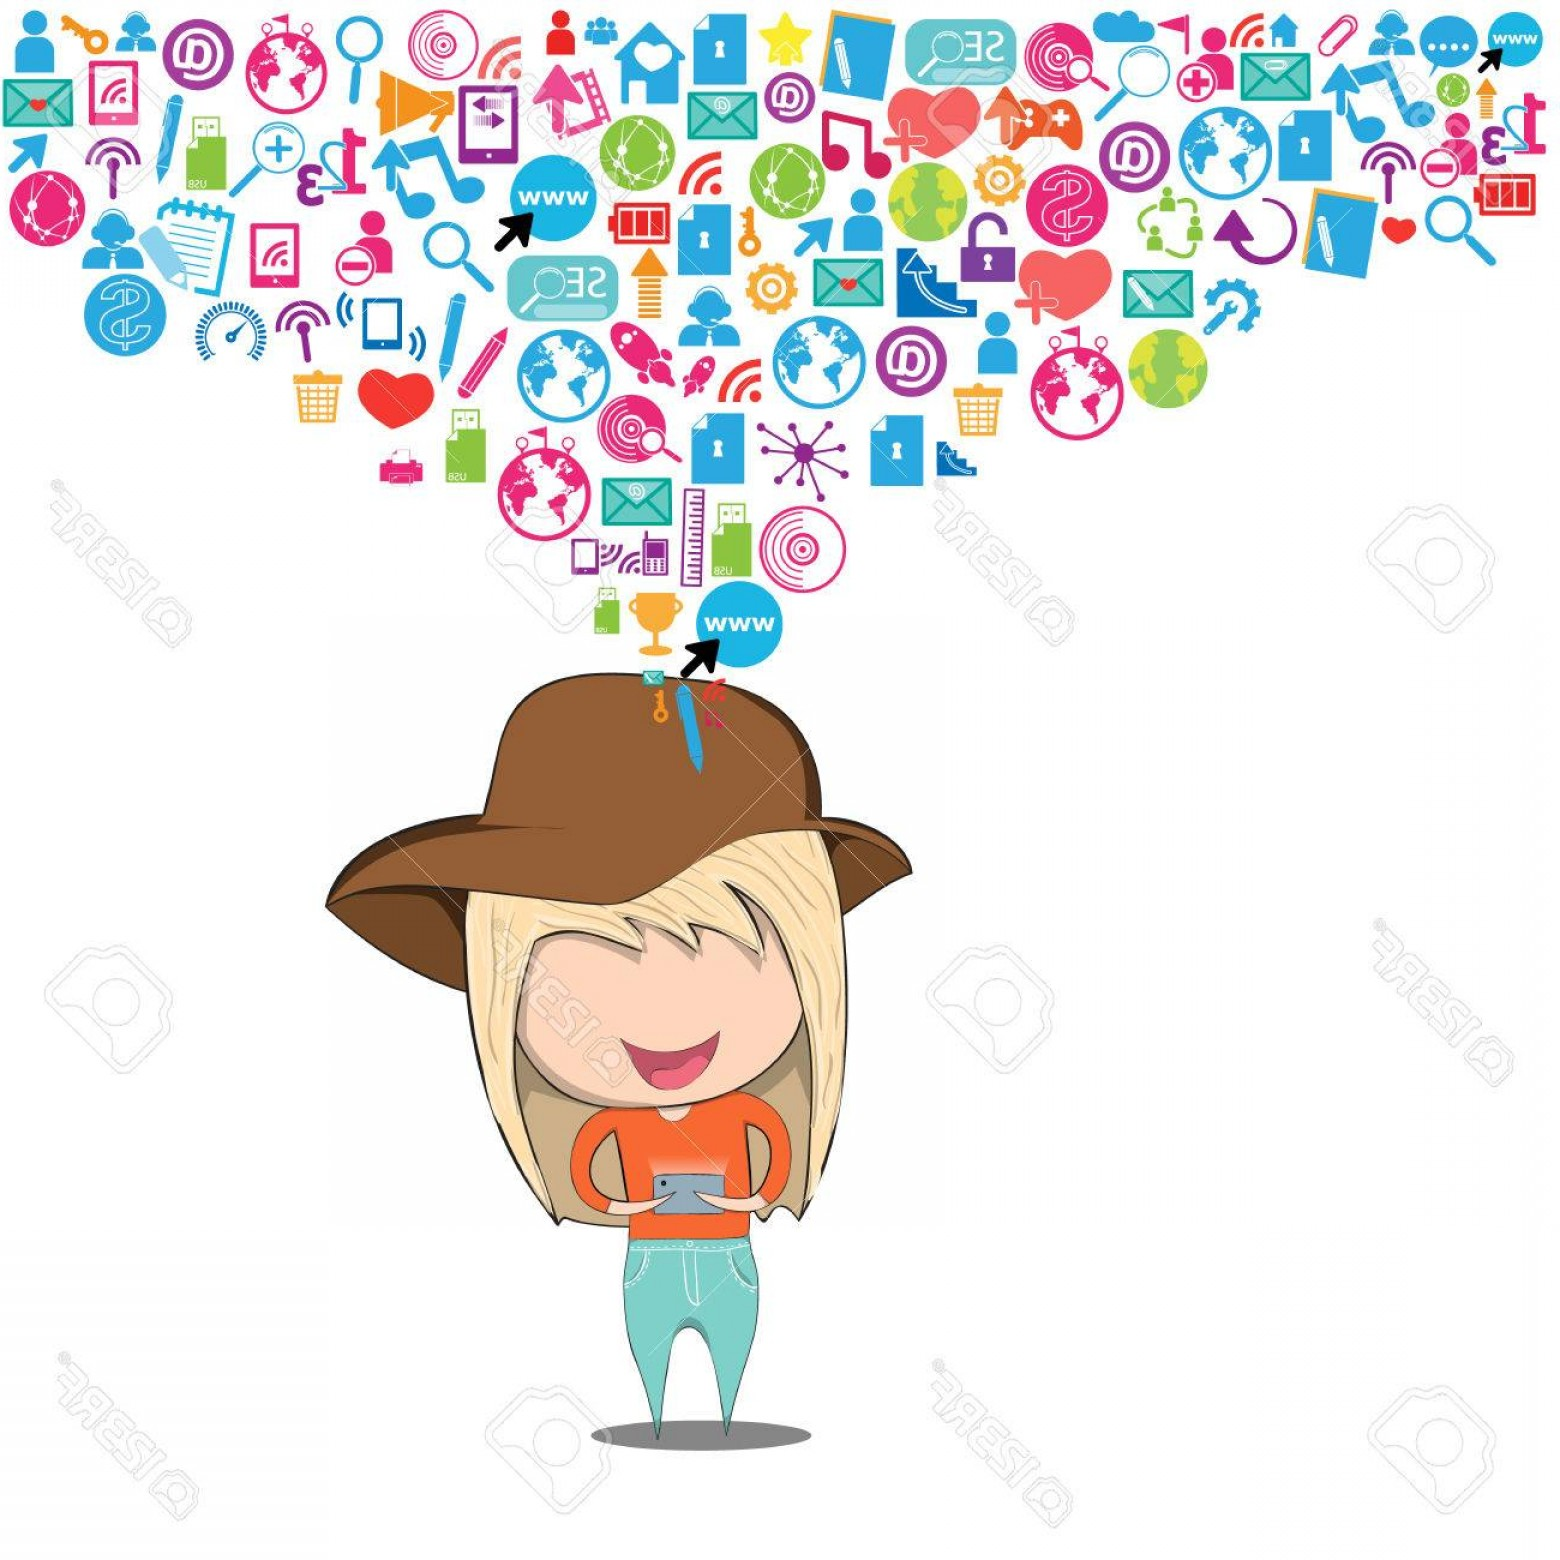 Teenage Icons Vector: Photostock Vector Teenage Girl Wearing Hat Playing With Phone Happy Template Design Thinking Idea With Social Network